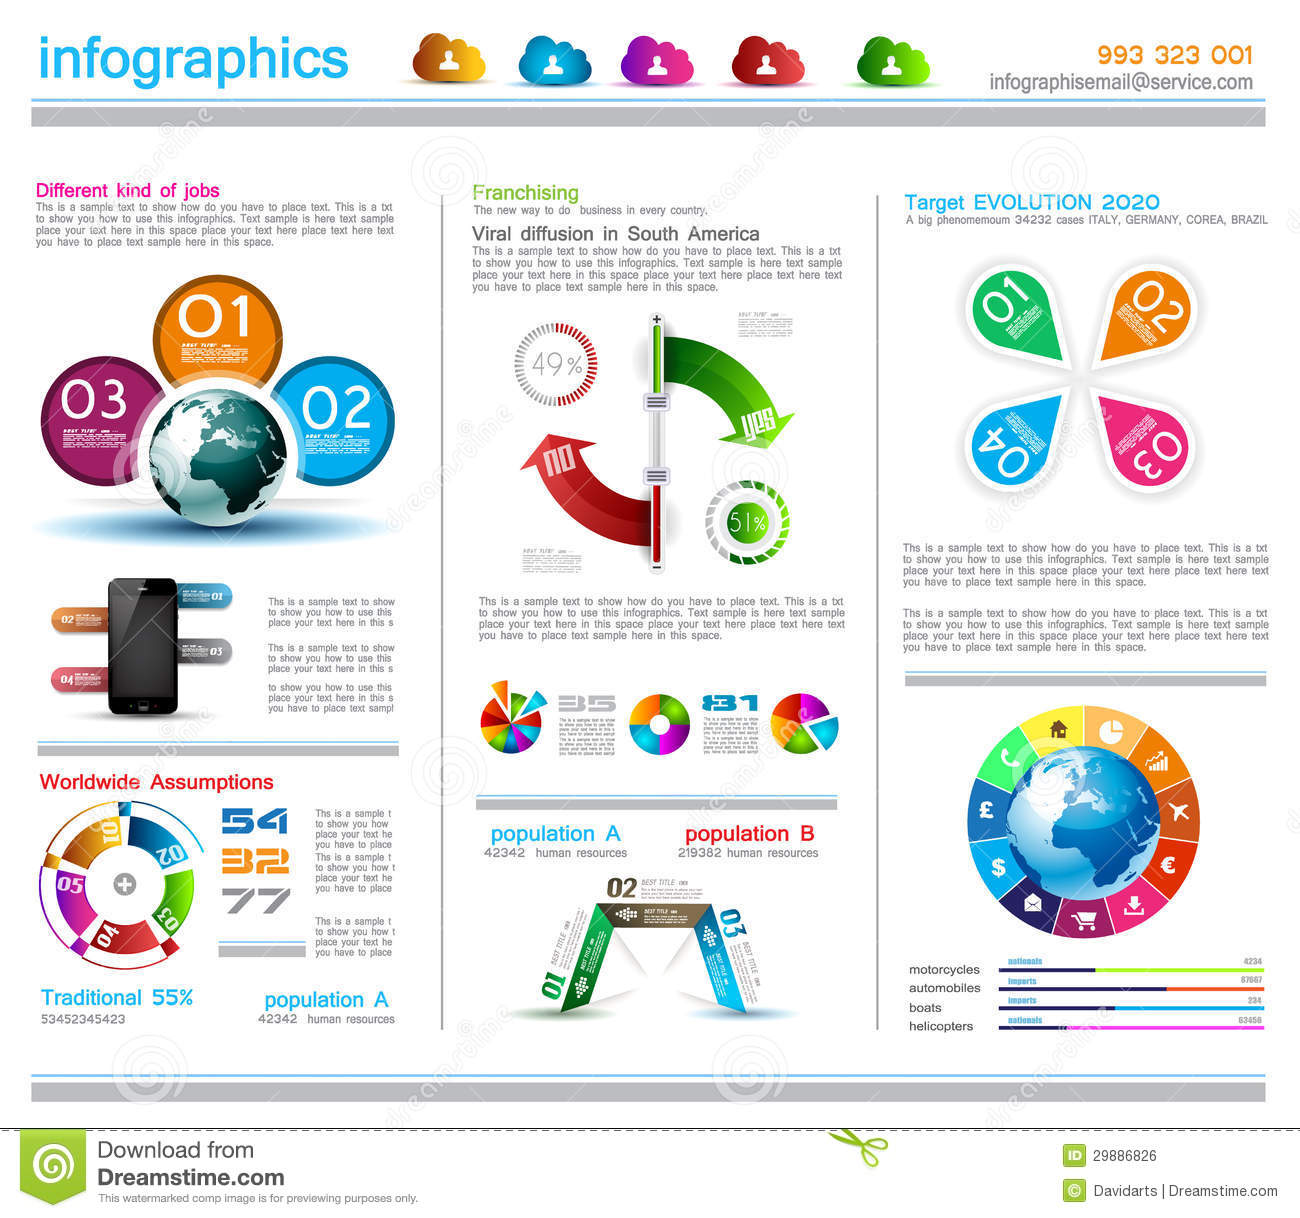 13 Infographic Design Templates Nature Images